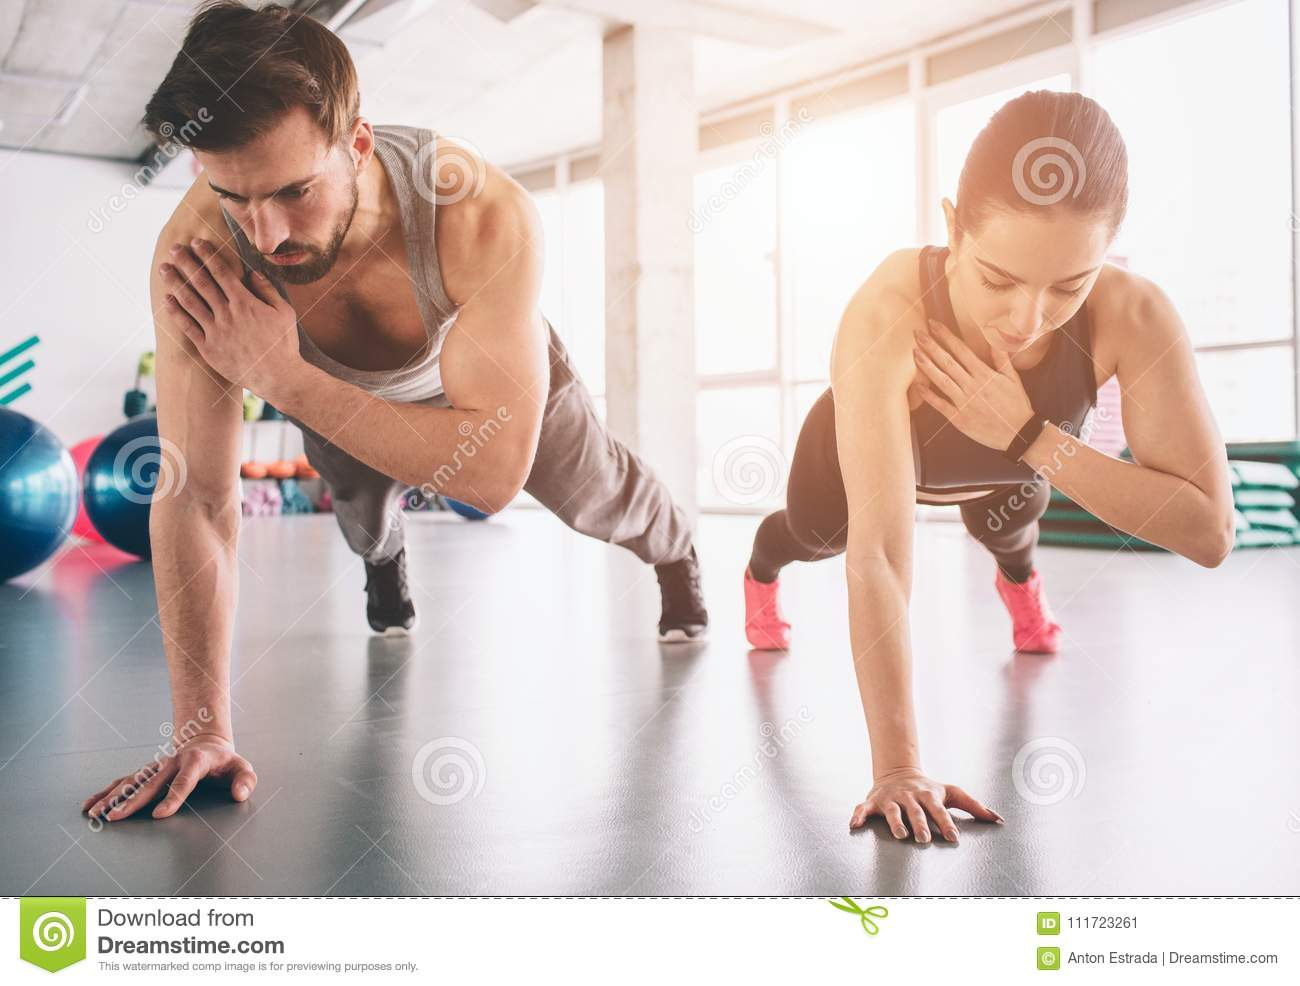 Slim girl and strong man are standing in one hand plank position and balancing on that hand. They look concentrated and